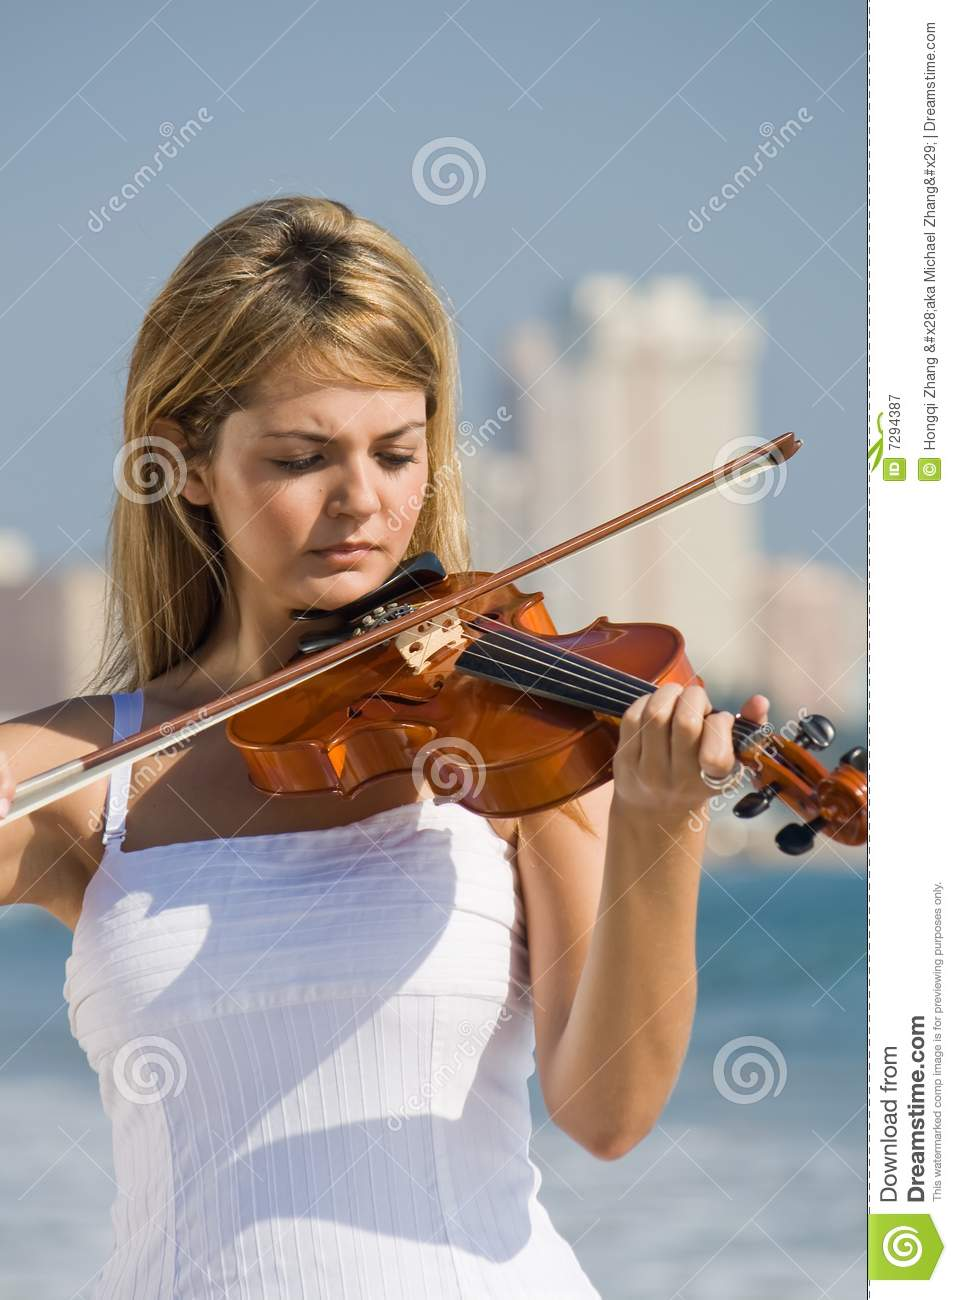 Image Result For Royalty Free Violin Music Free Download